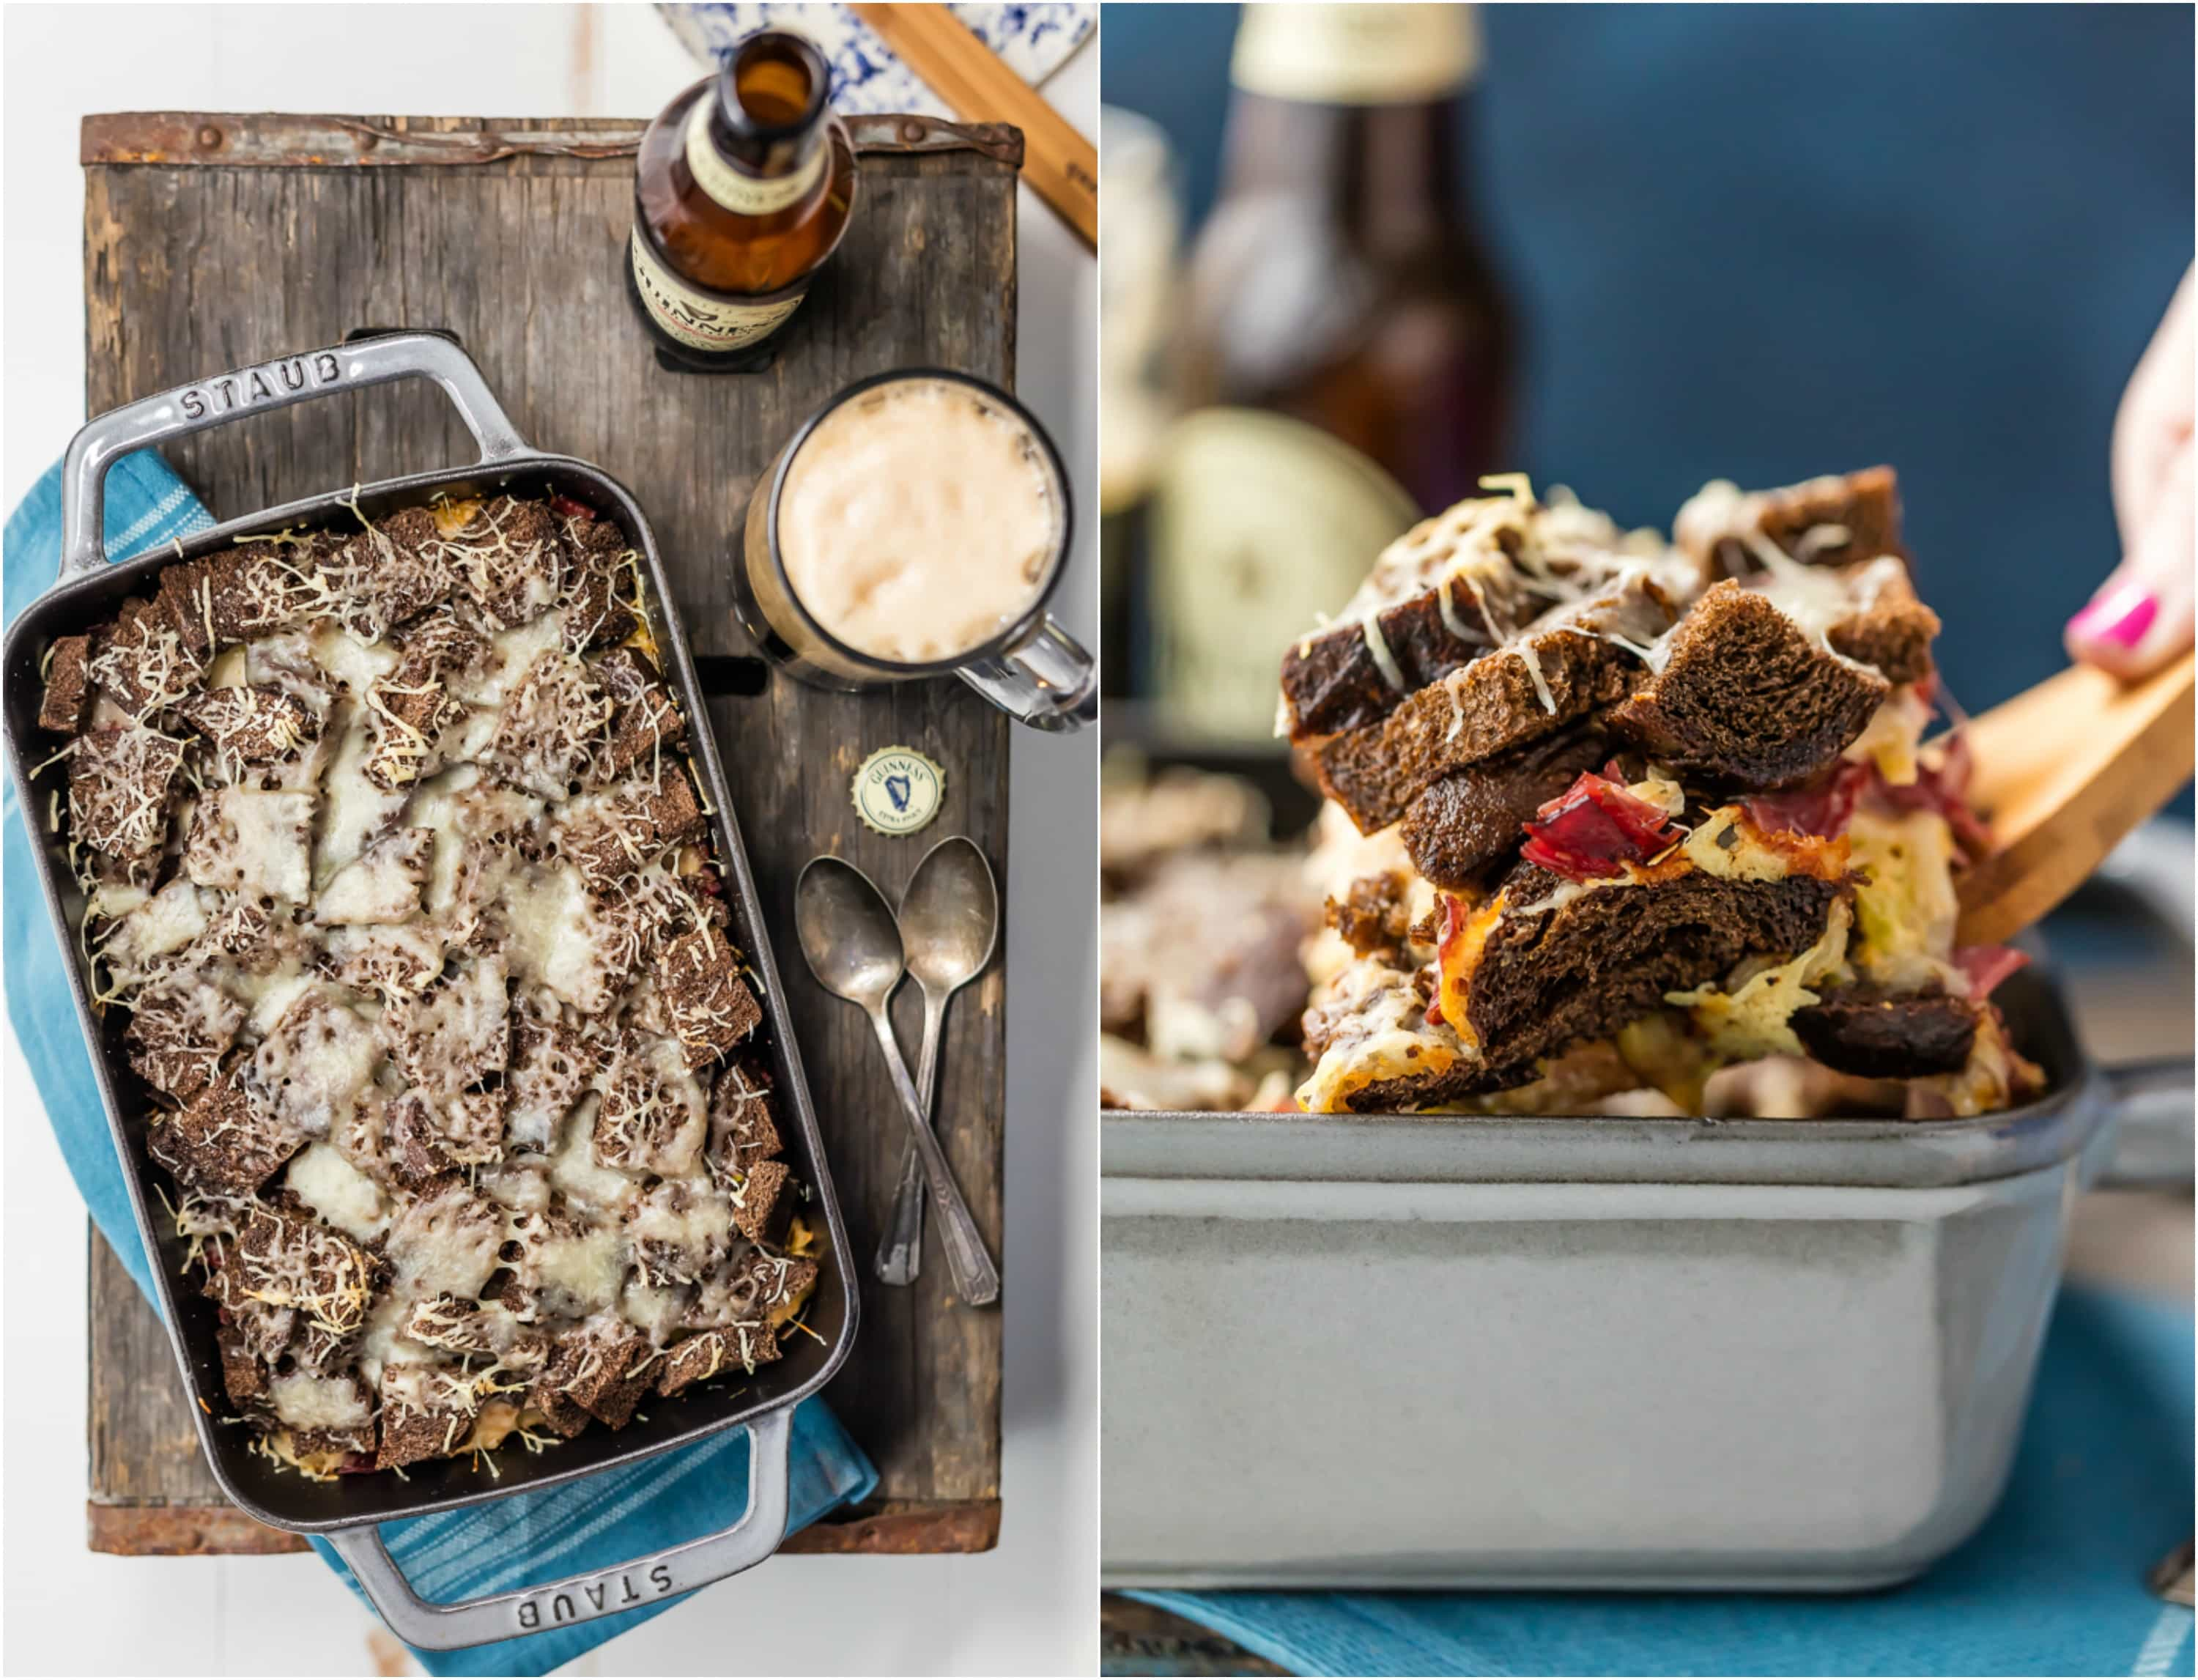 Reuben Casserole is a must make every St. Patrick's Day! Such an easy comfort food recipe, loaded with corned beef, rye bread, sauerkraut, Swiss cheese, and so much more. I love the flavor combination and love how simple it is to throw together in a pinch. ALL THAT CHEESE ON TOP! Gimme.